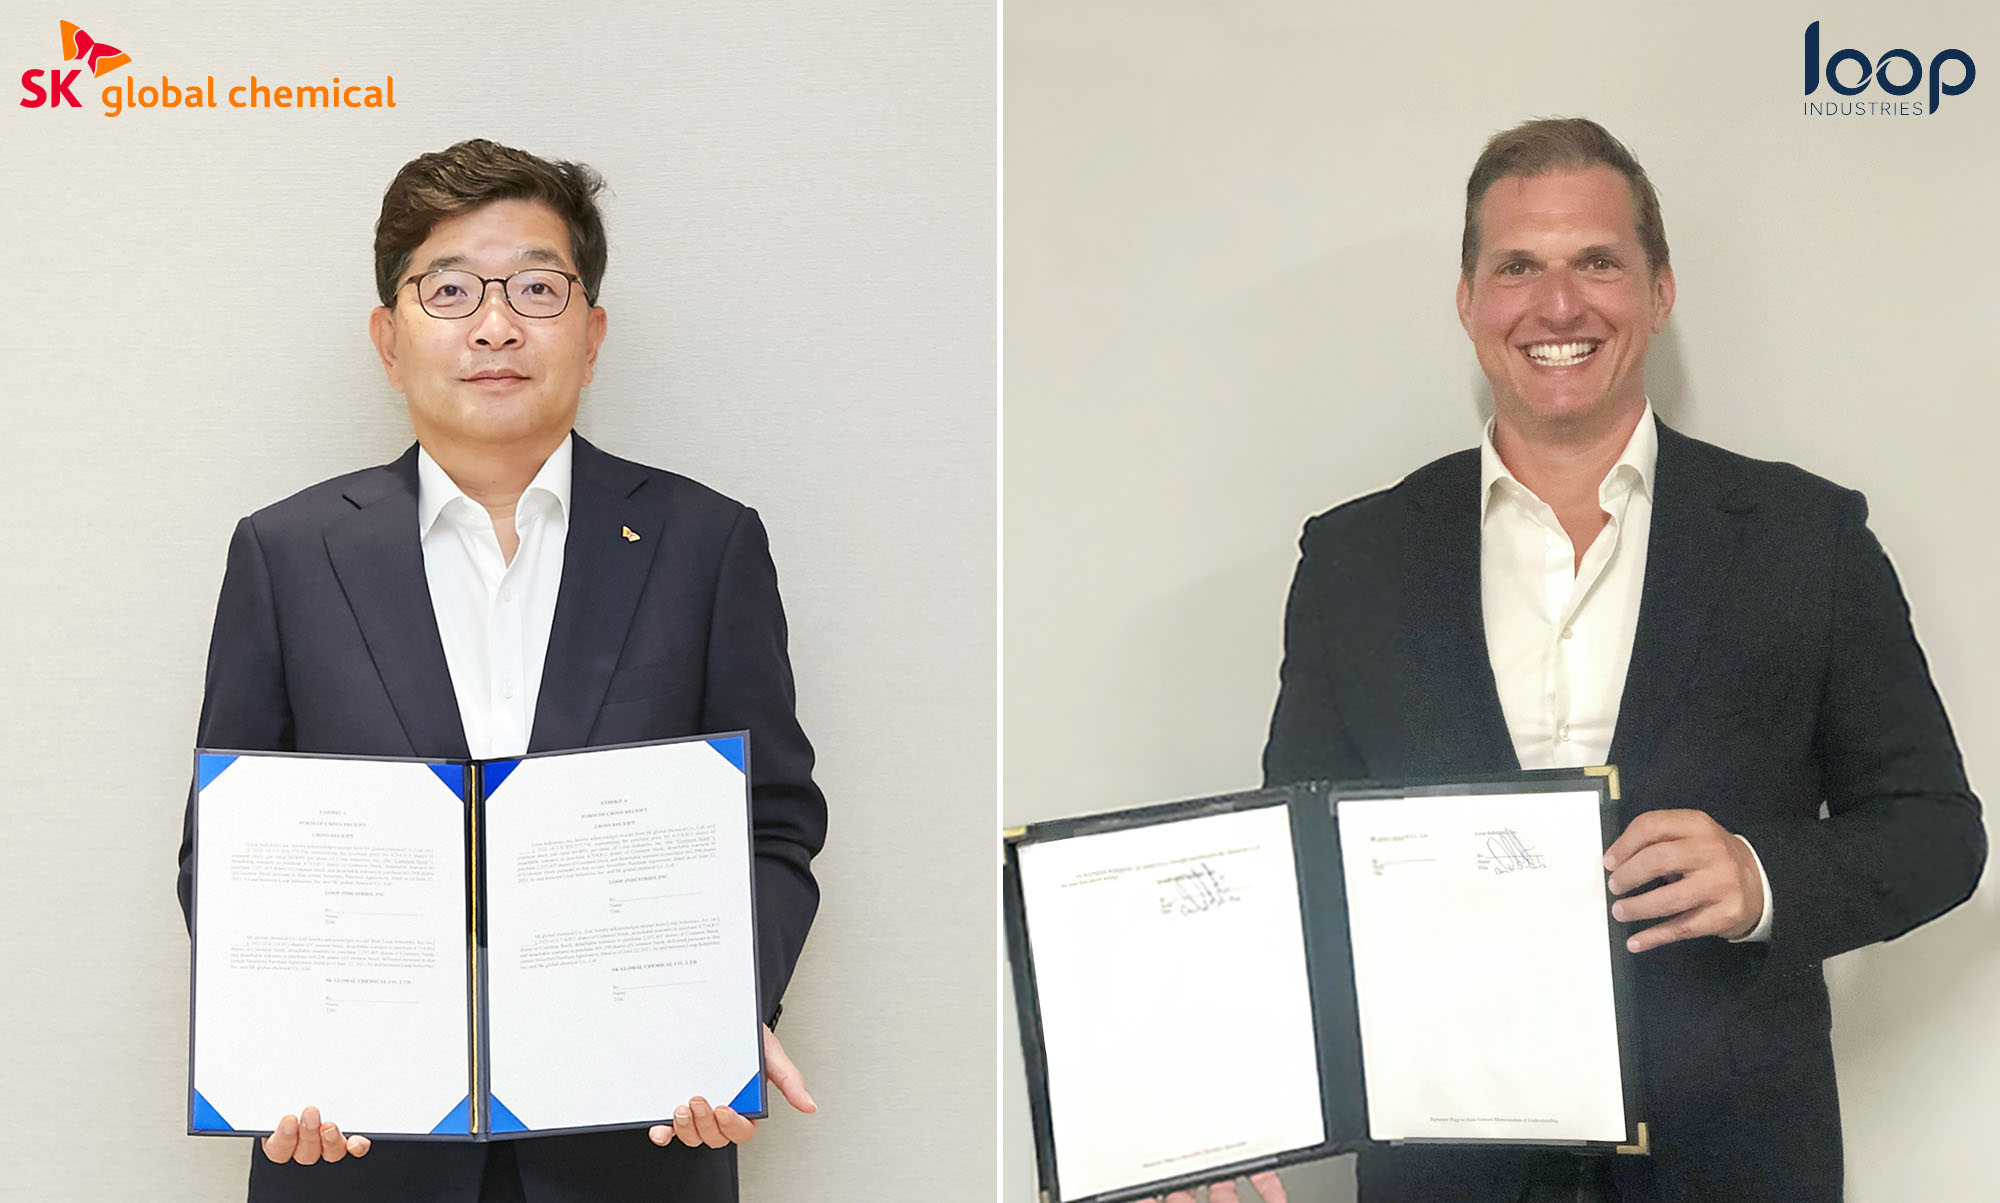 CEO of SK Global Chemical Na Kyung-soo (left) and CEO/Founder of Loop Industries Daniel Solomita (right) sign the strategic investment agreement between the two companies. (SK Group)